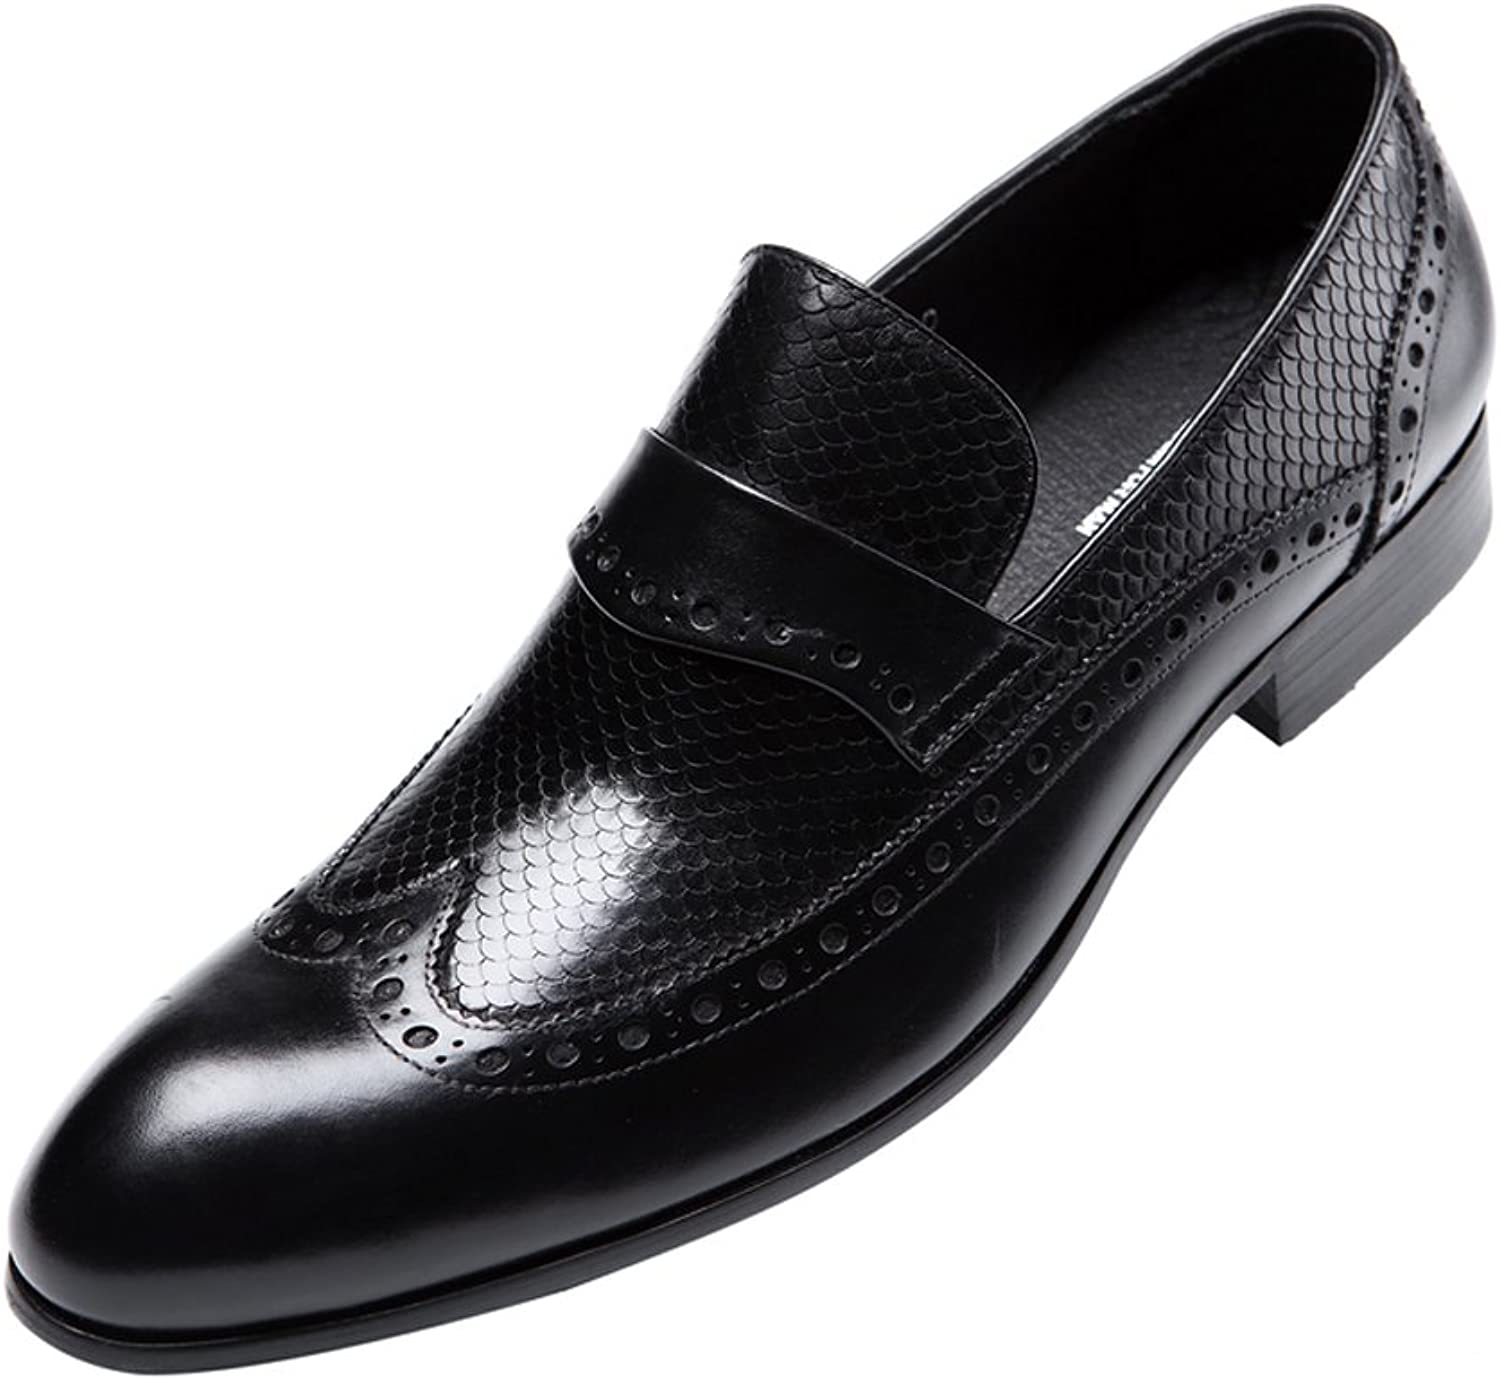 MEbox Mens Casual Lined Dress Oxfords Leather shoes